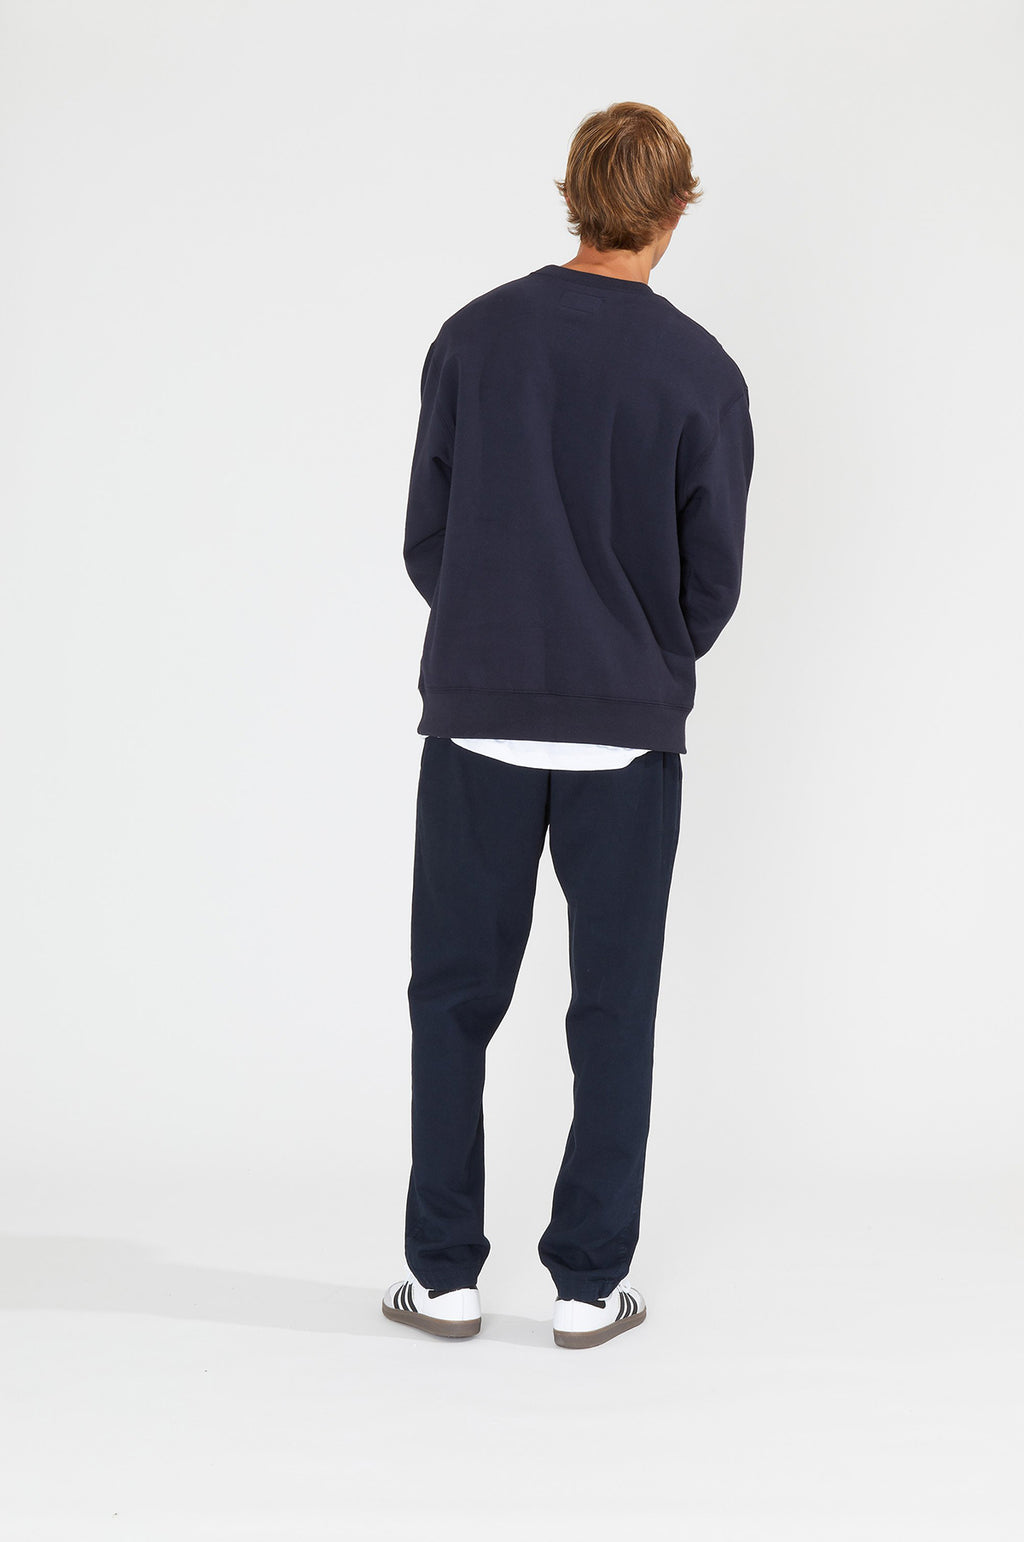 Twill Bank Pant in Dark Navy